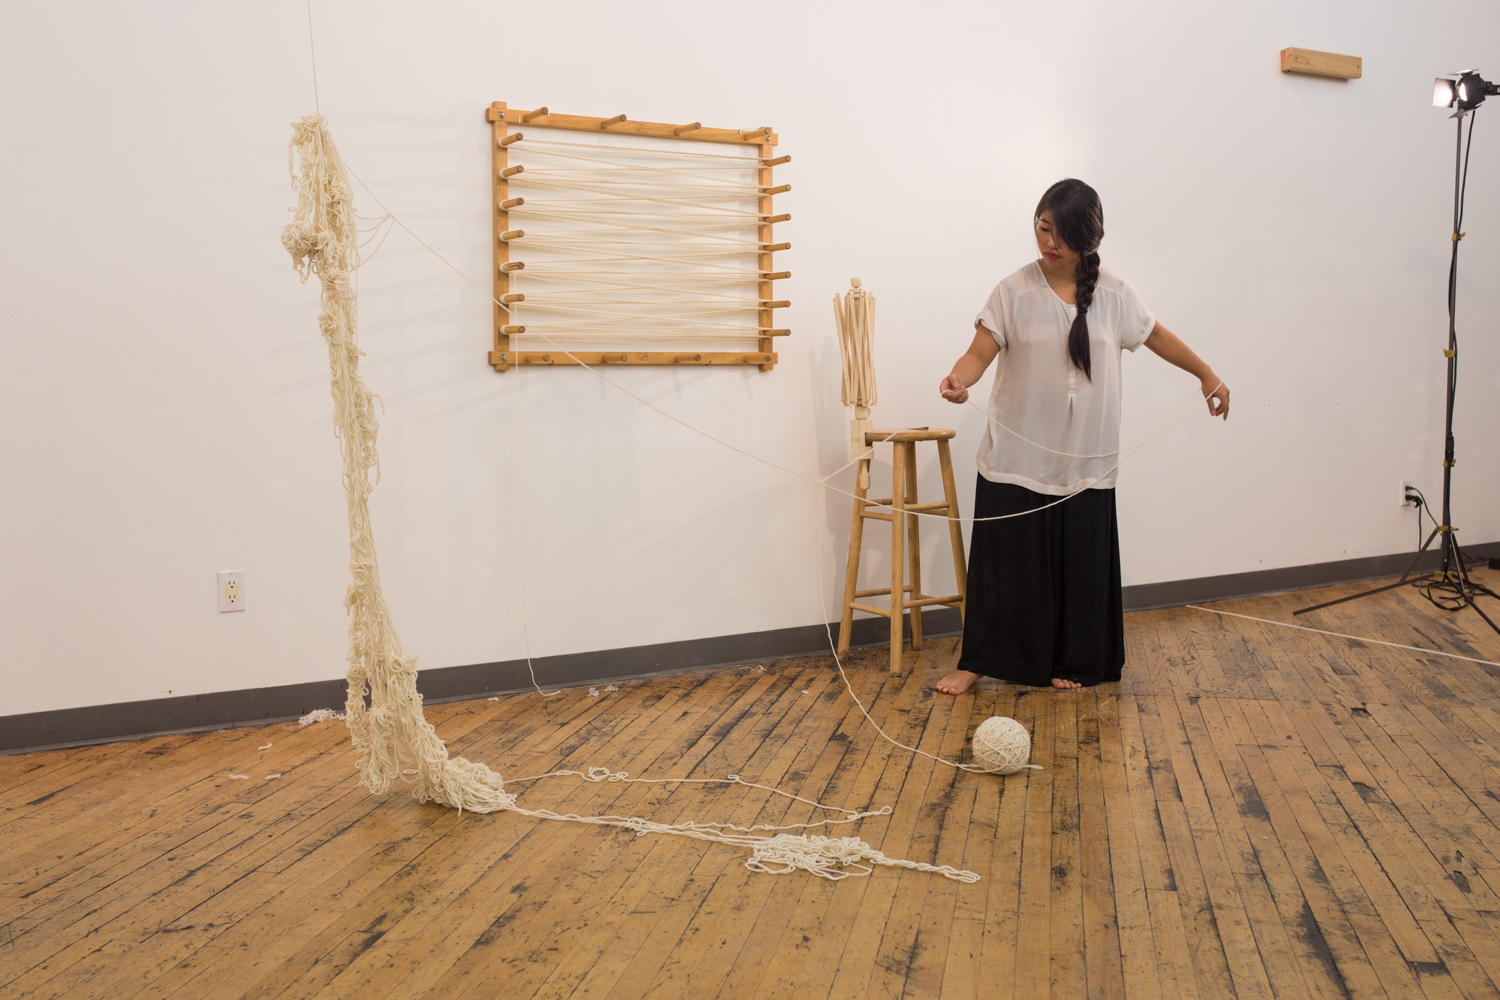 The artist is standing and unraveling. The ball of untangled yarn is now at 4.5 inches in diameter. Half of the knotted yarn has been untangled while the rest cascades from mid-air to the floor.